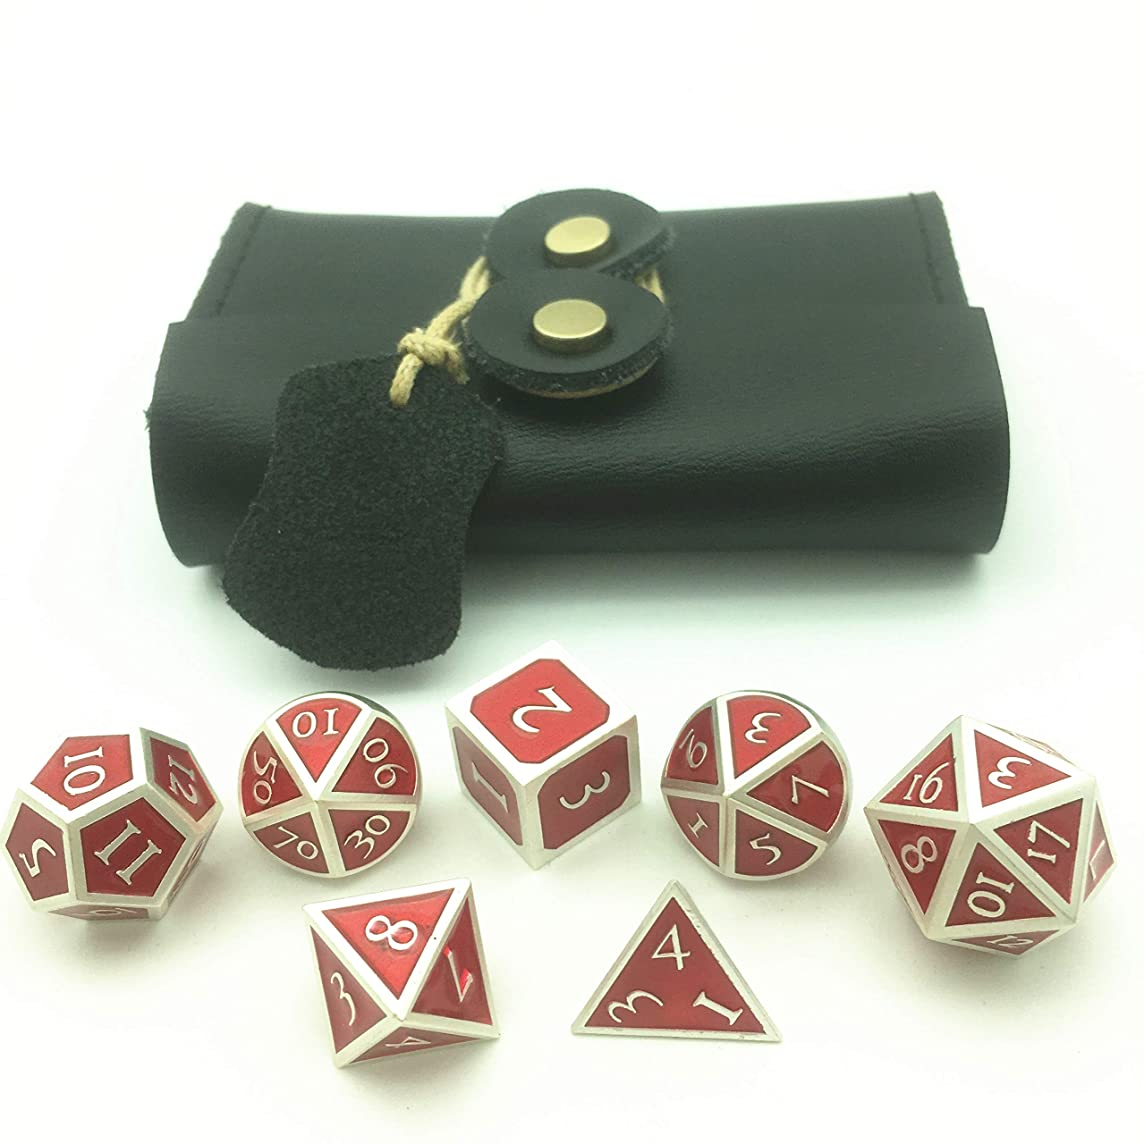 Momostar Solid Polyhedron Dice, Metallic Tweezers for DND RPG,Pearl Silver Color & Red Background.